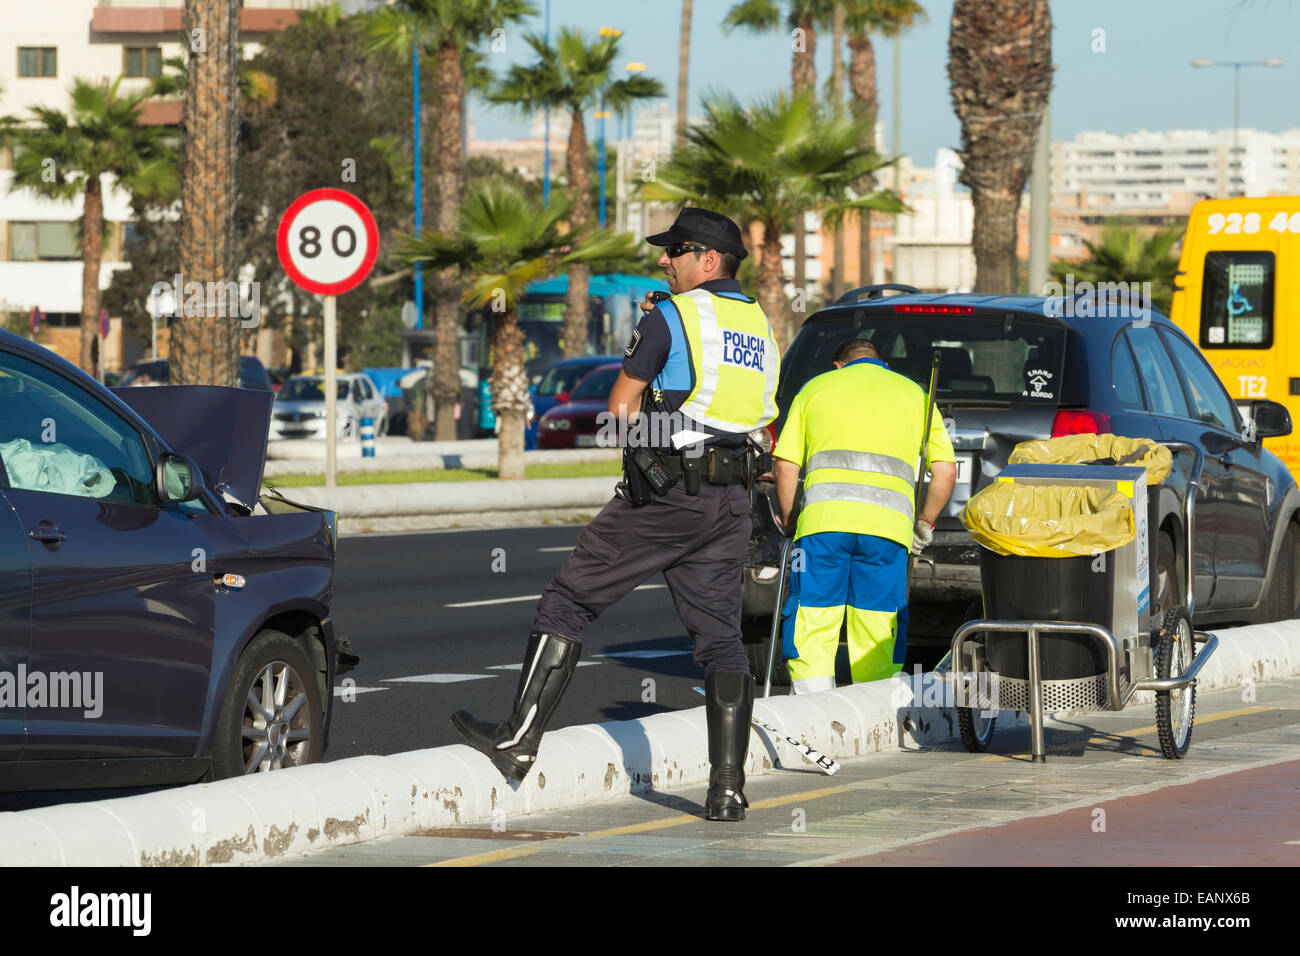 Spanish policeman at scene of road traffic accident in Las Palmas, Gran Canaria, Canary Islands, Spain - Stock Image